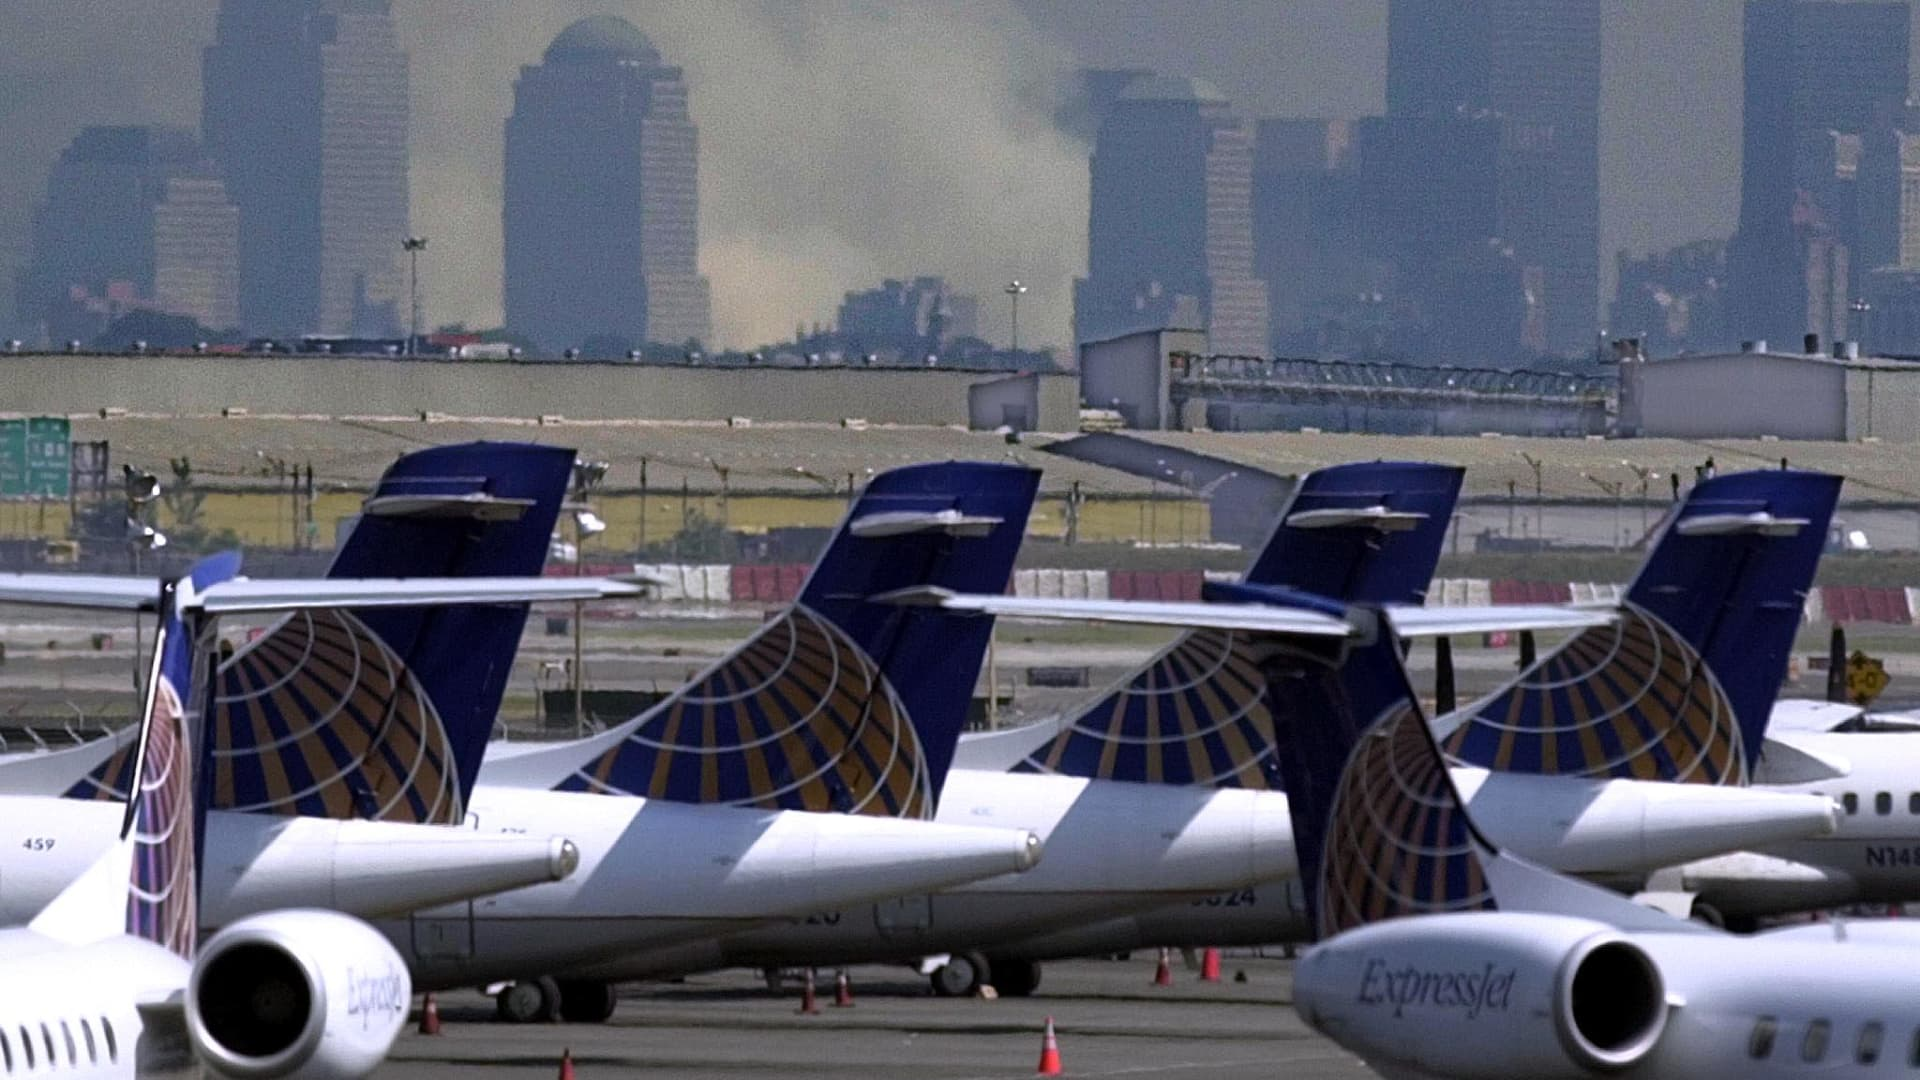 Smoke continues to billow from the remains of the World Trade Center as Continental Express planes sit at the closed Newark, New Jersey Airport 12 September 2001 in the wake of the terrorist attack on the World Trade Center. One of the hijacked planes departed the Newark Airport and later crashed near Pittsburgh, Pennsylvania.